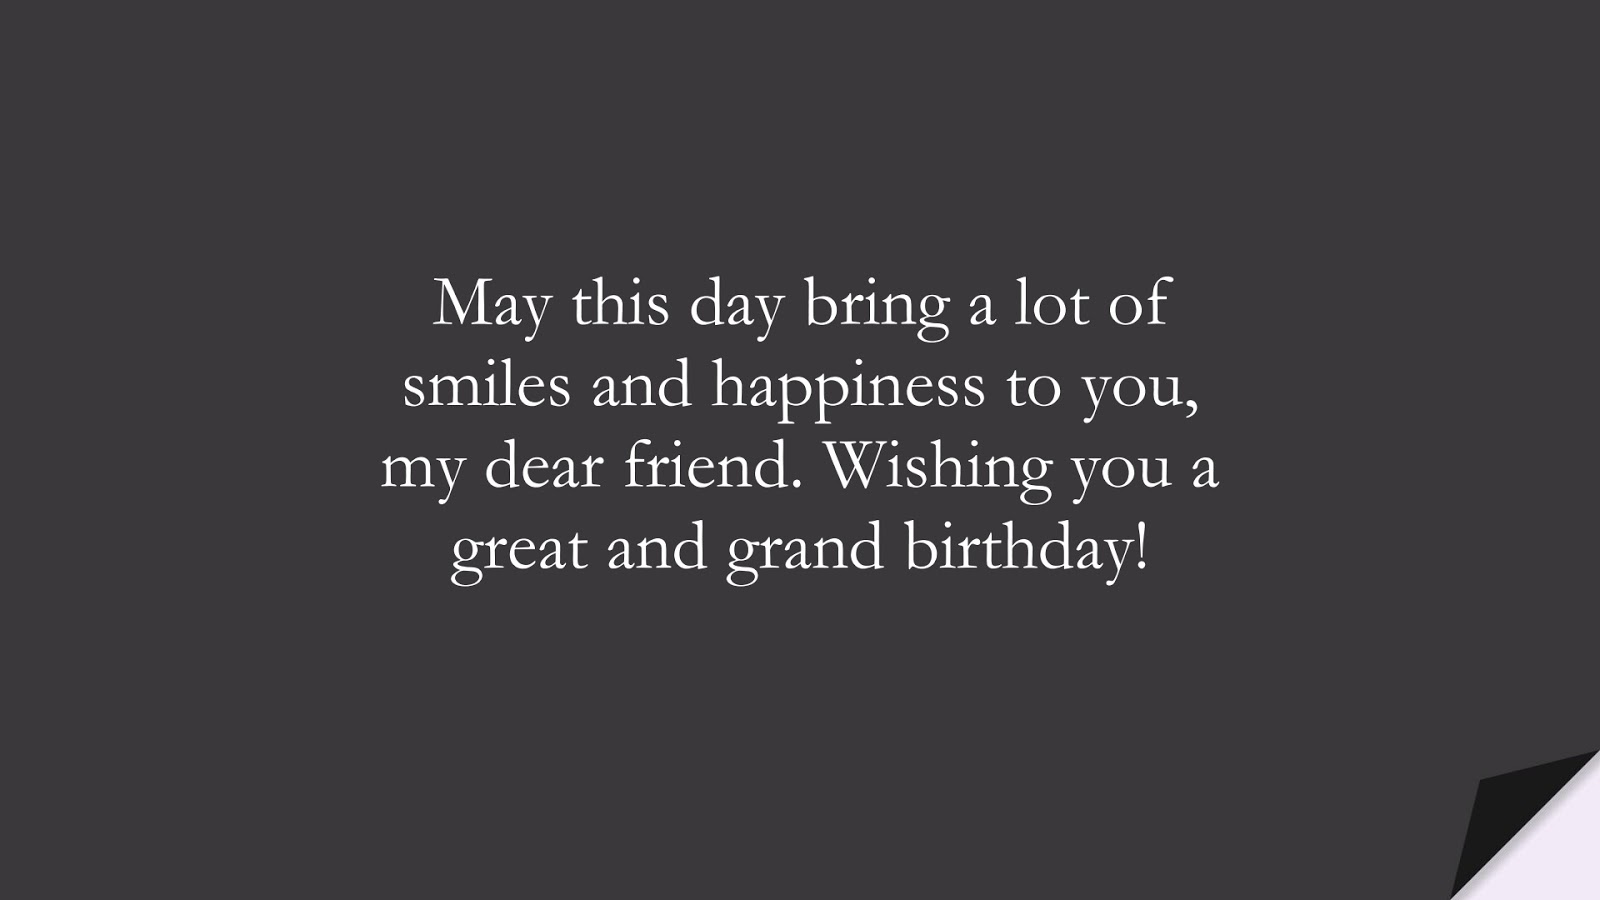 May this day bring a lot of smiles and happiness to you, my dear friend. Wishing you a great and grand birthday!FALSE